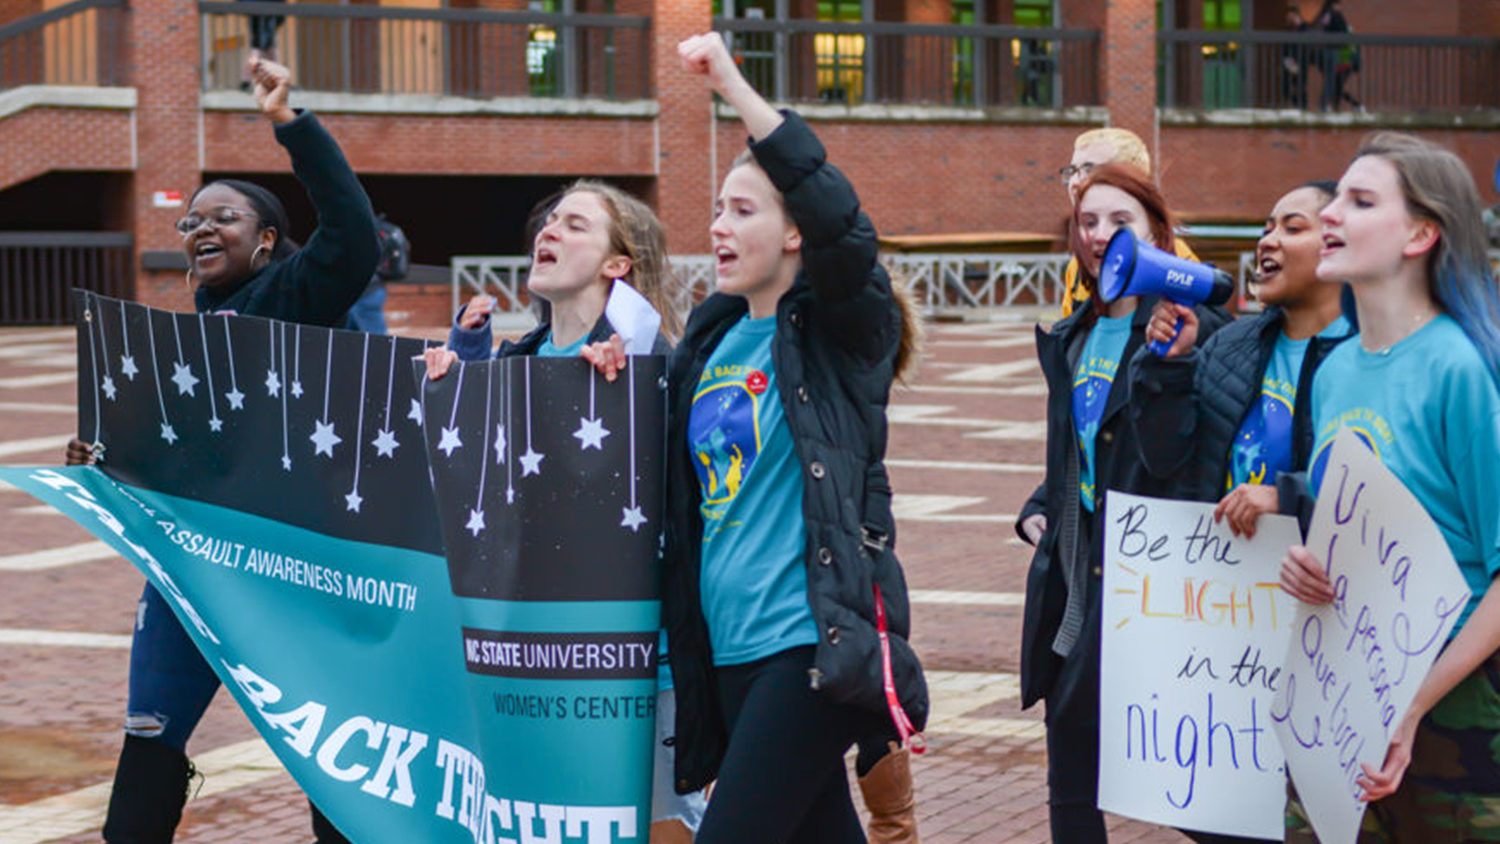 Students marching across the Brickyard at Take Back the Night